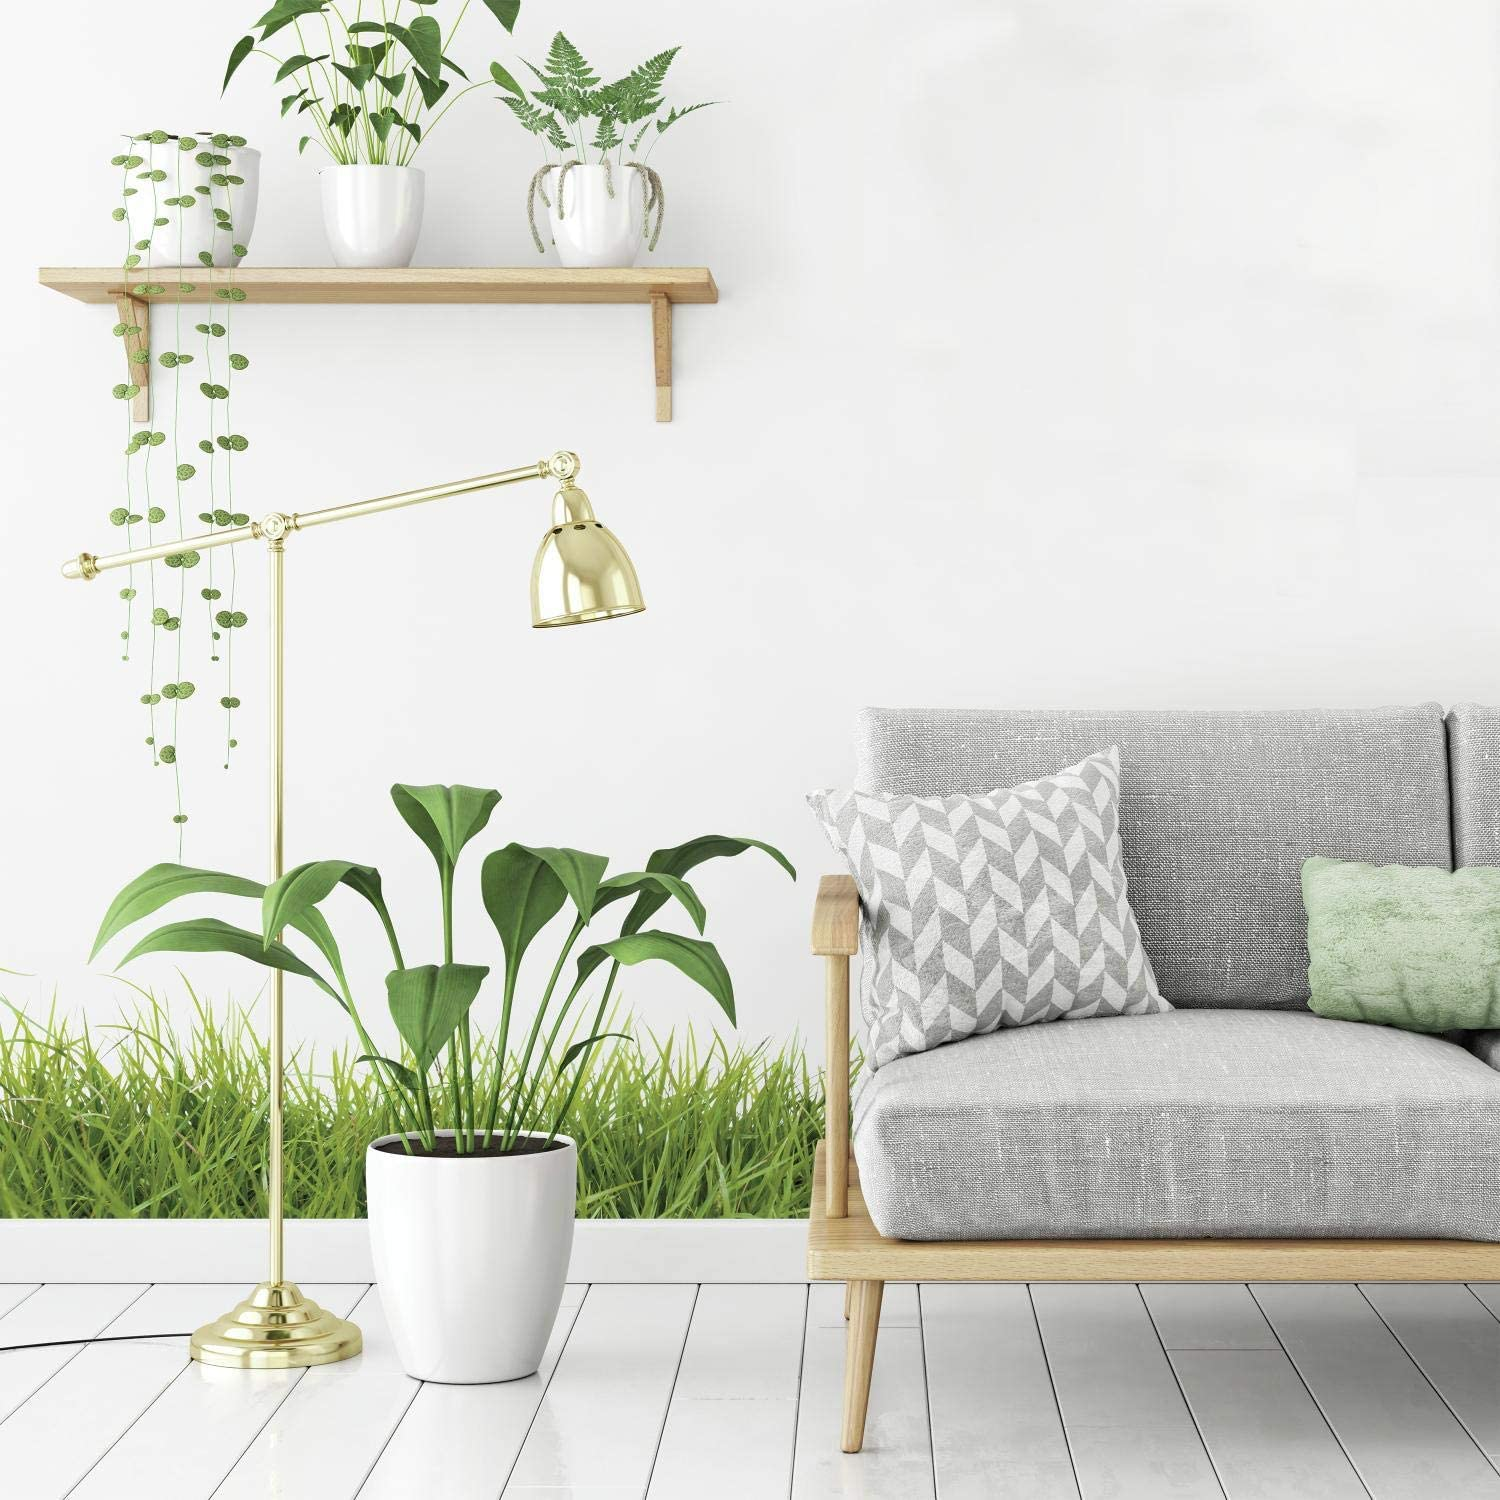 RoomMates Grass Peel And Stick Giant Wall Decals,Green,1 Sheet 36.5 inches x 17.25 inches